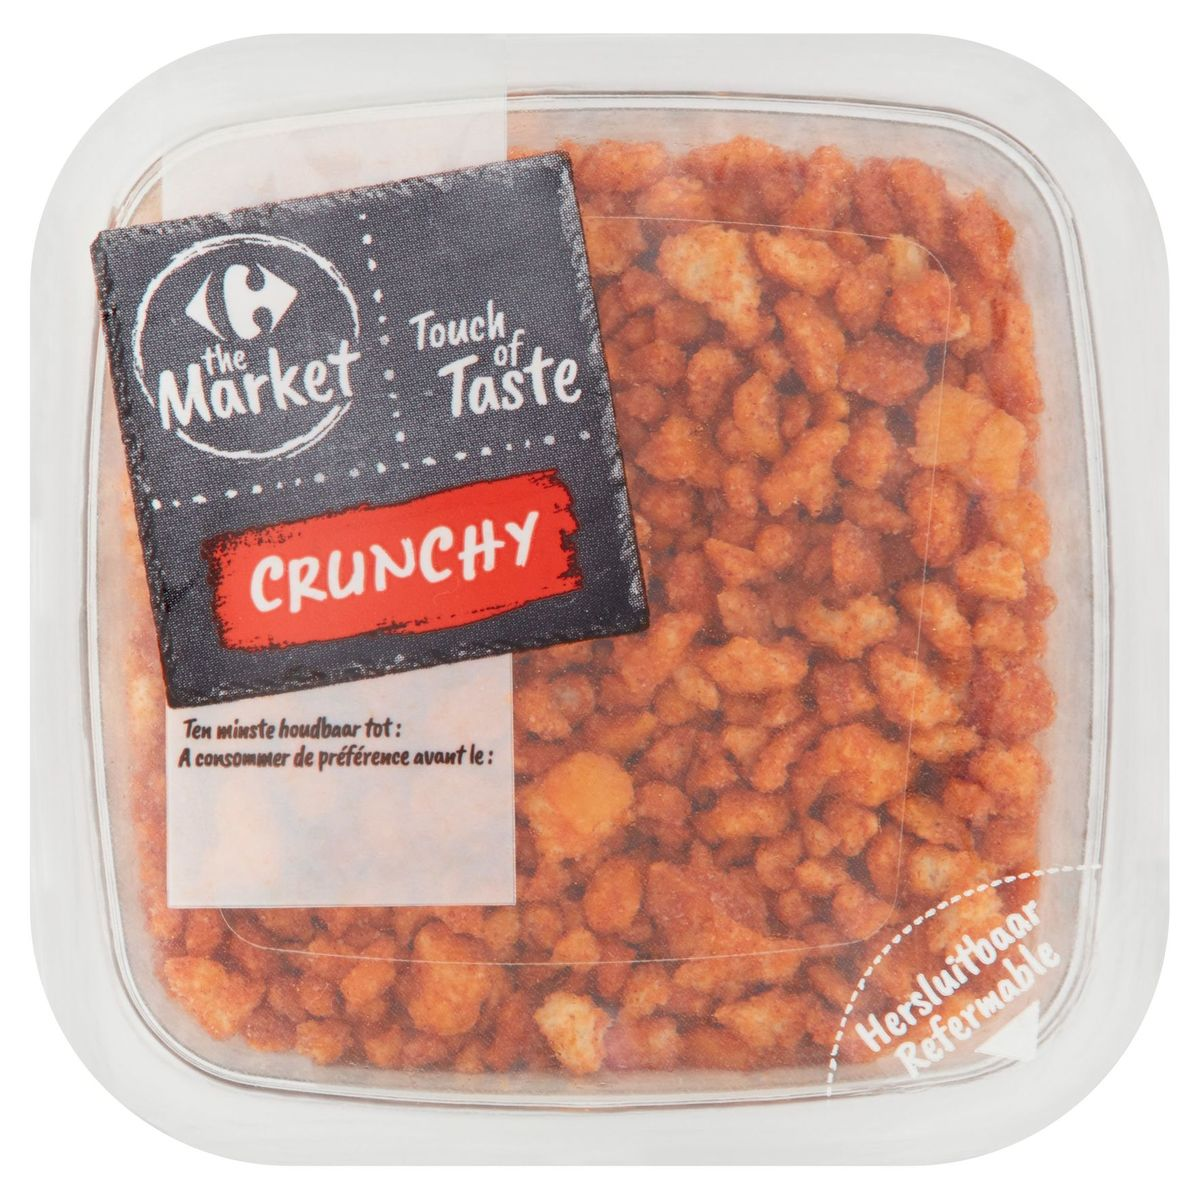 Carrefour The Market Touch of Taste Crunchy Mix Saveur Bacon 80 g